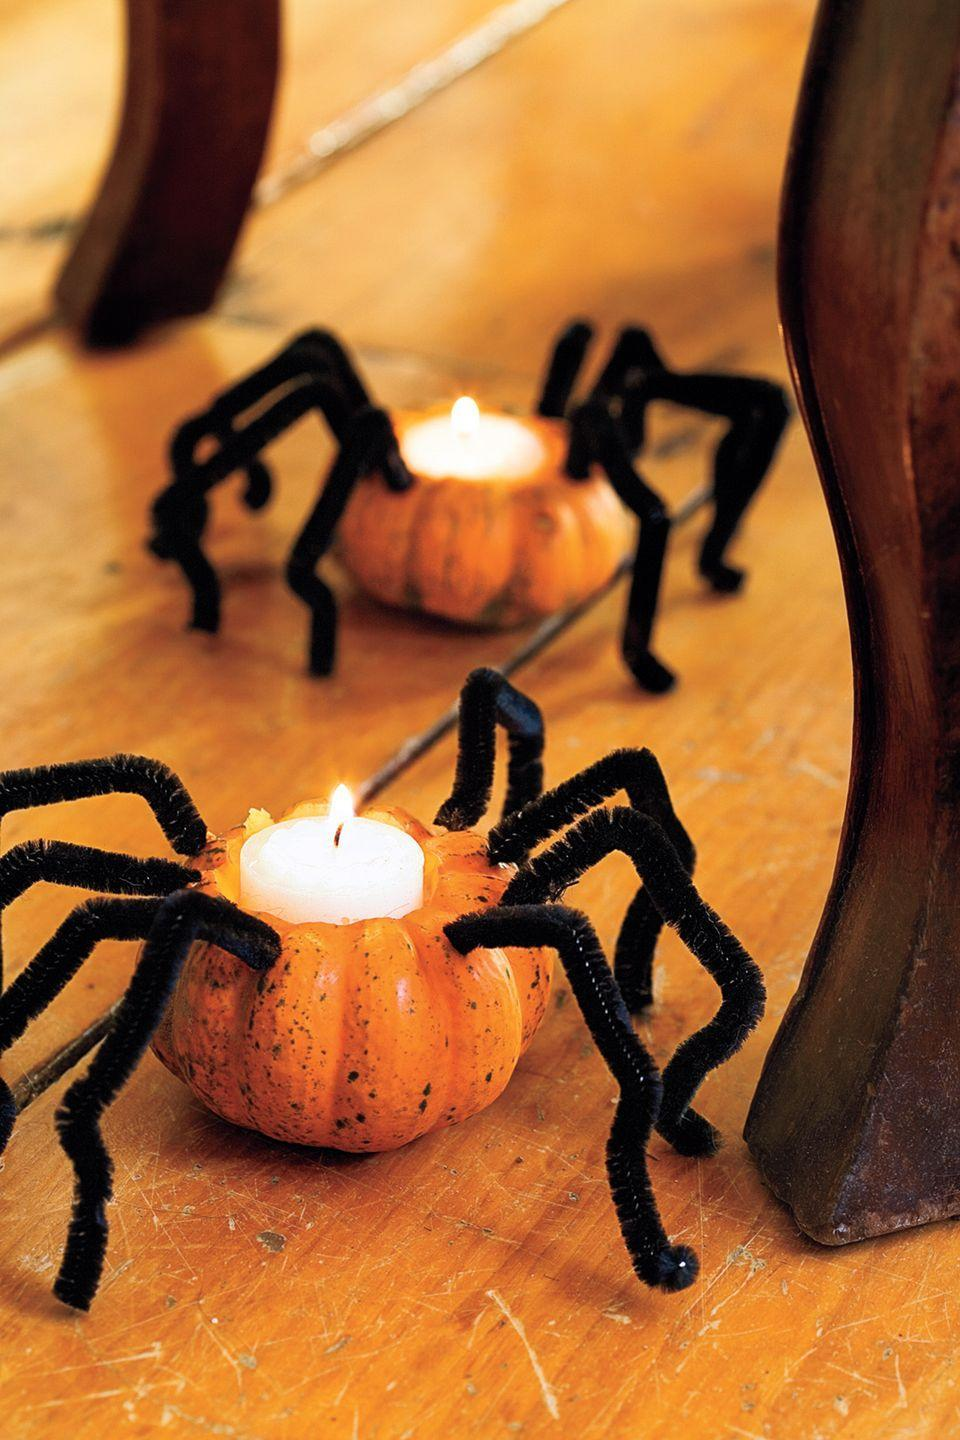 <p>Light the way with these spidery candle-holders. Scoop out mini pumpkins and add tealights and pipe cleaners for big bugs you'll actually love spotting around the house. </p>